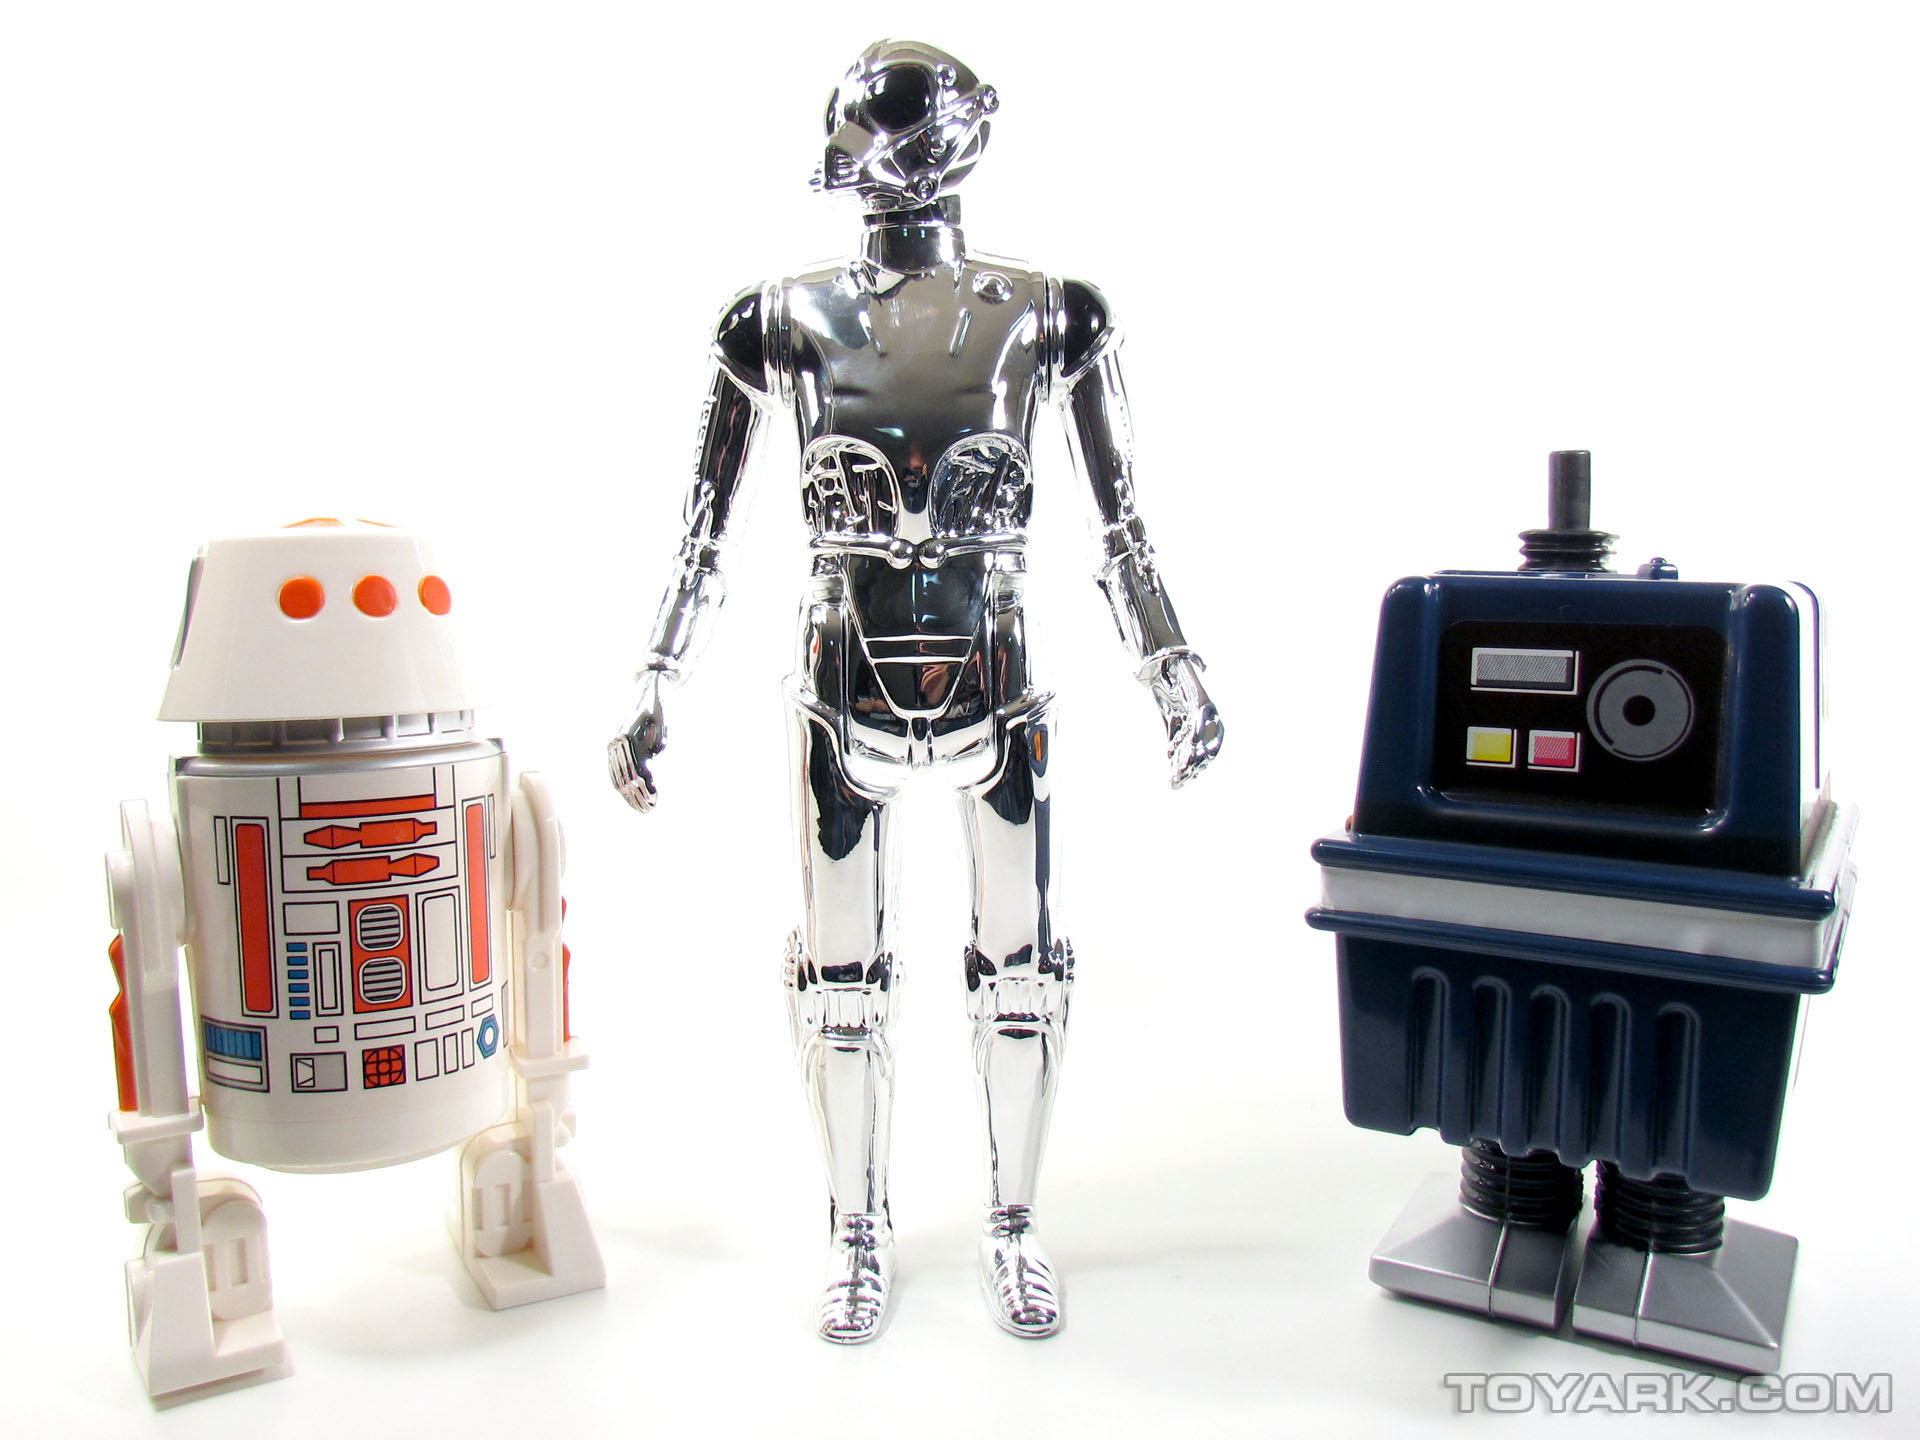 Star Wars Droids Toys : Toyark review star wars droid jumbo kenner action figure